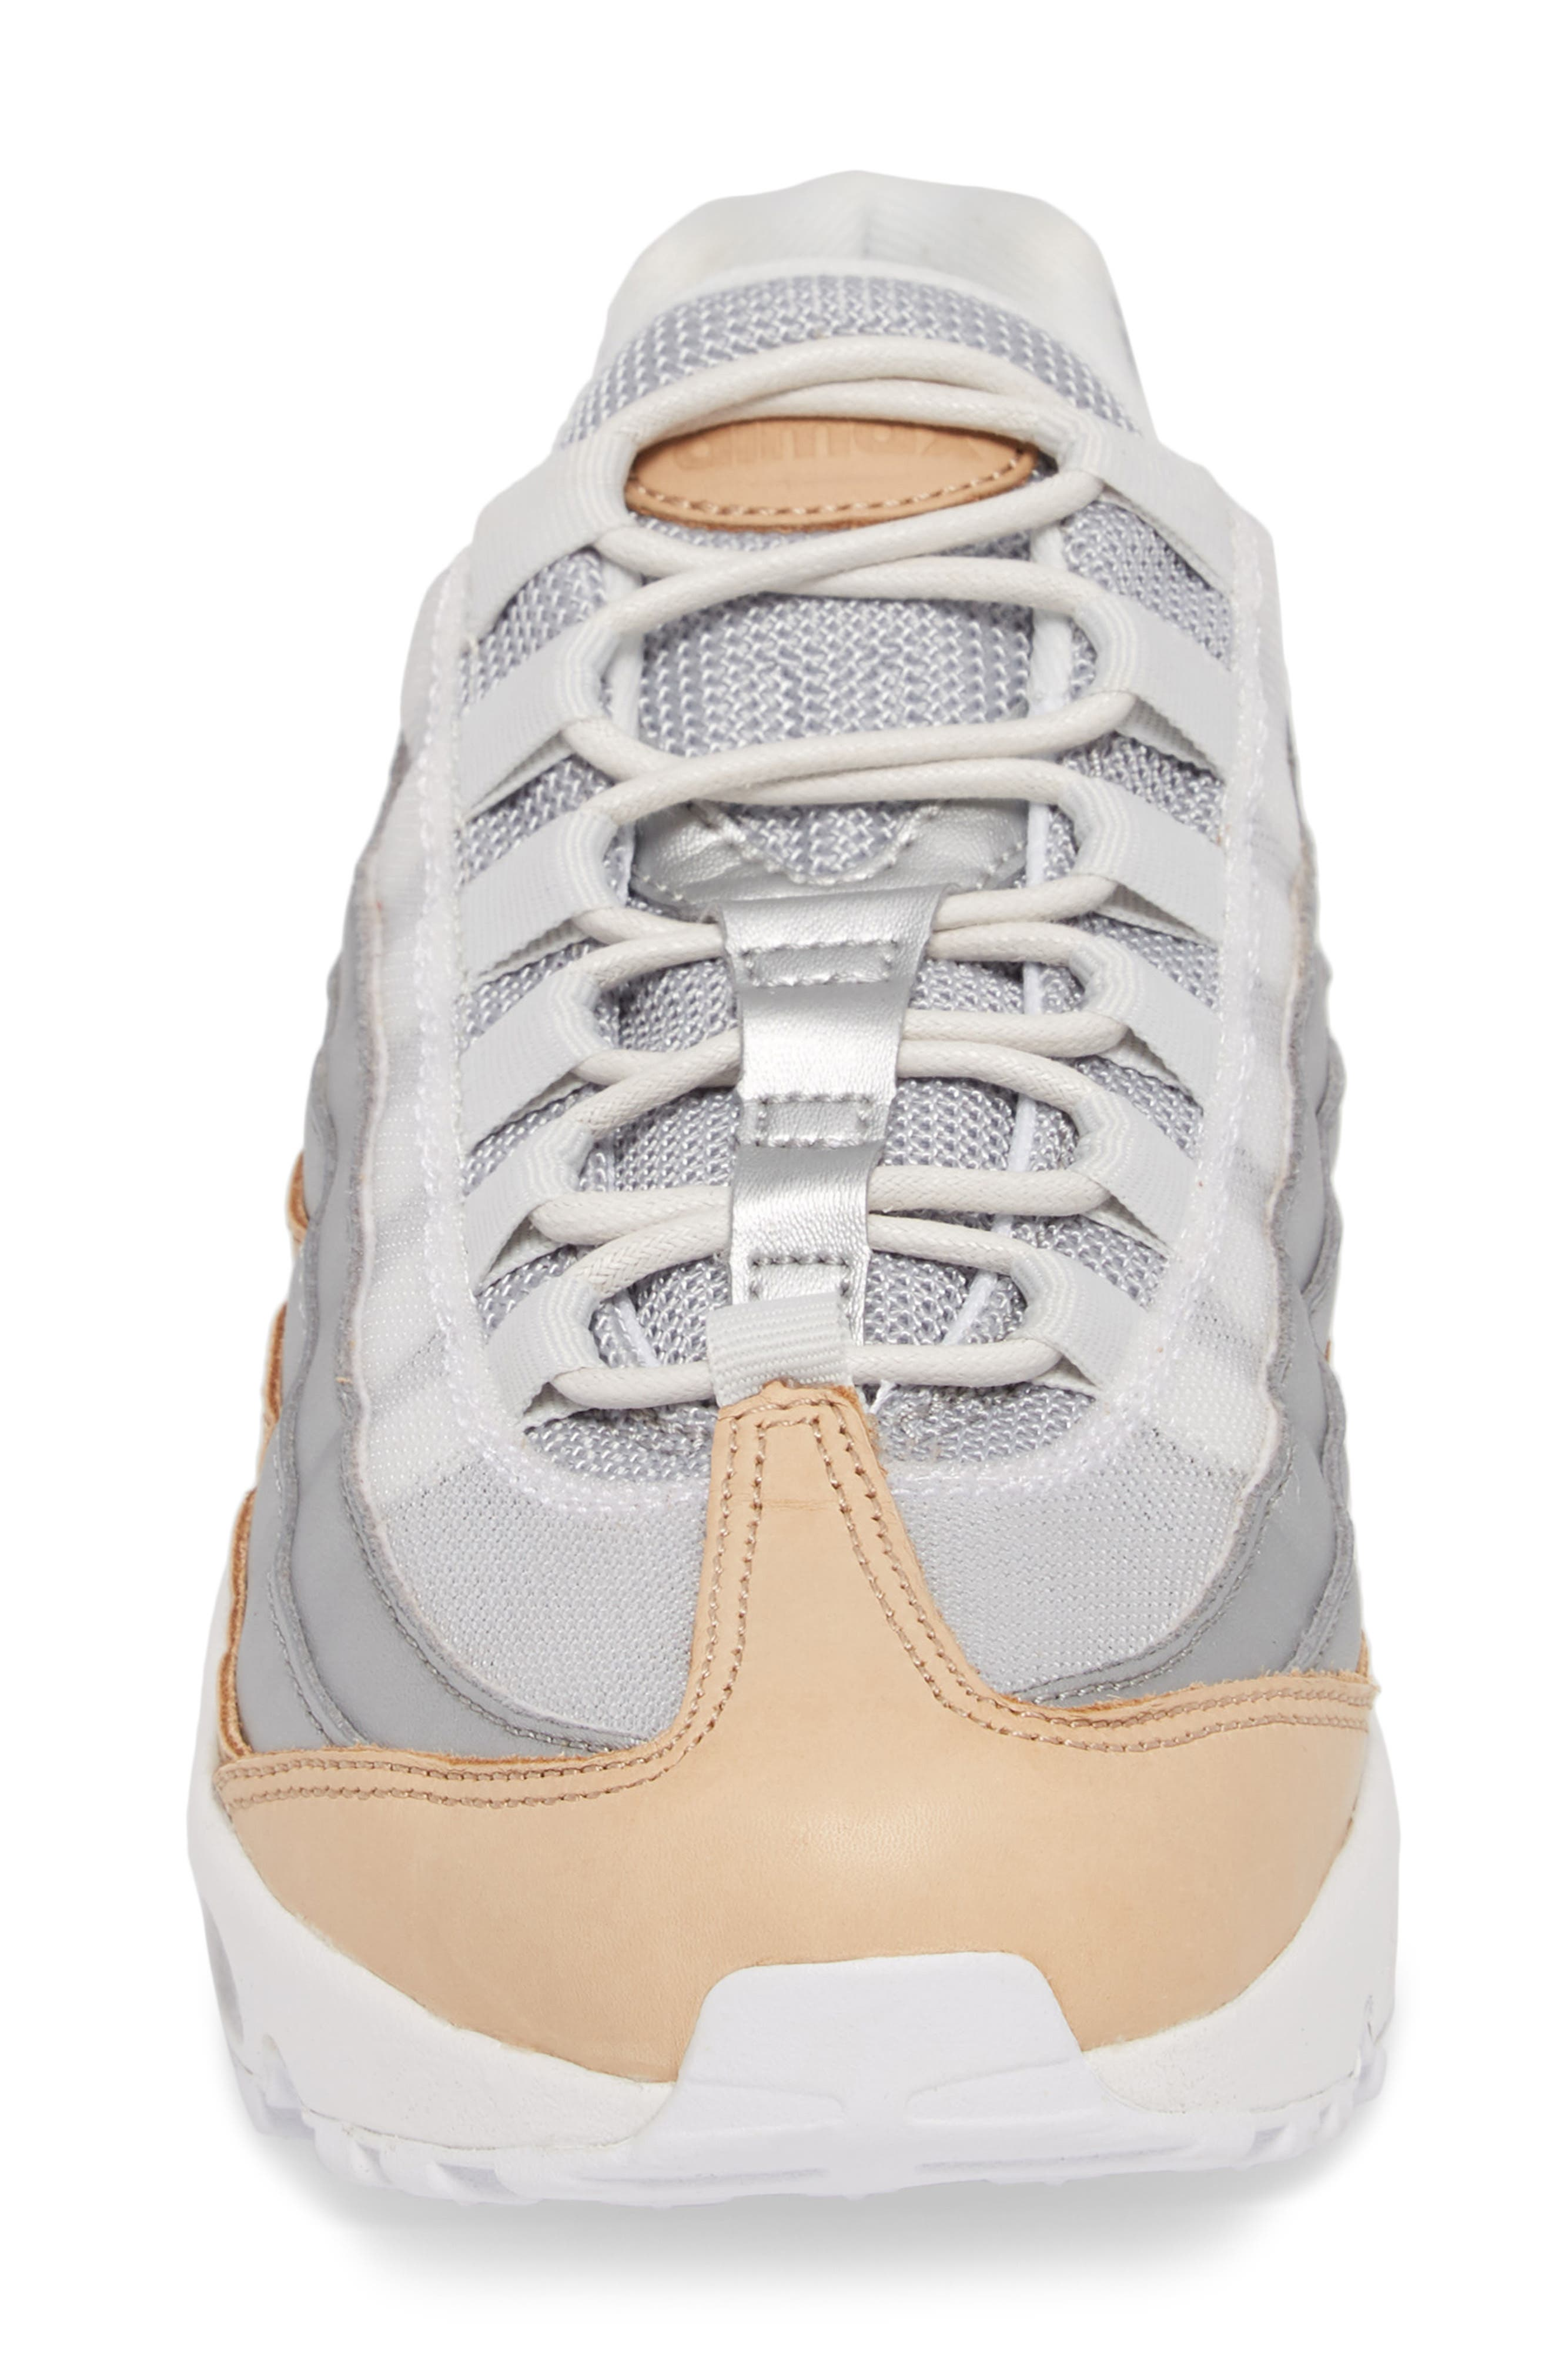 Air Max 95 Special Edition Running Shoe,                             Alternate thumbnail 4, color,                             Platinum/ Silver/ White